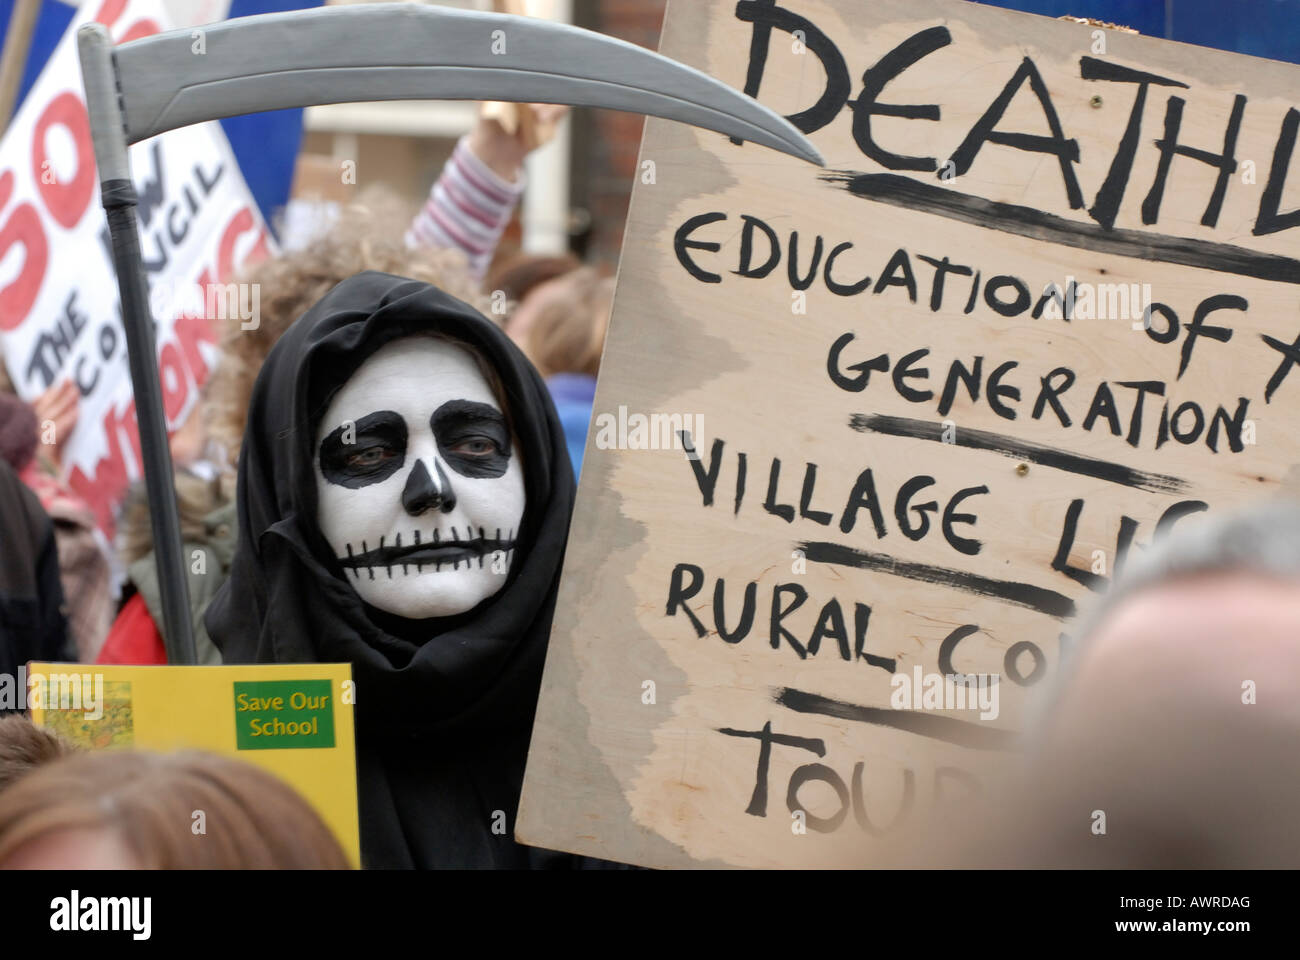 a person dressed as the grim reaper in a costume during a demonstration rally rallies to protest aginst the governments - Stock Image